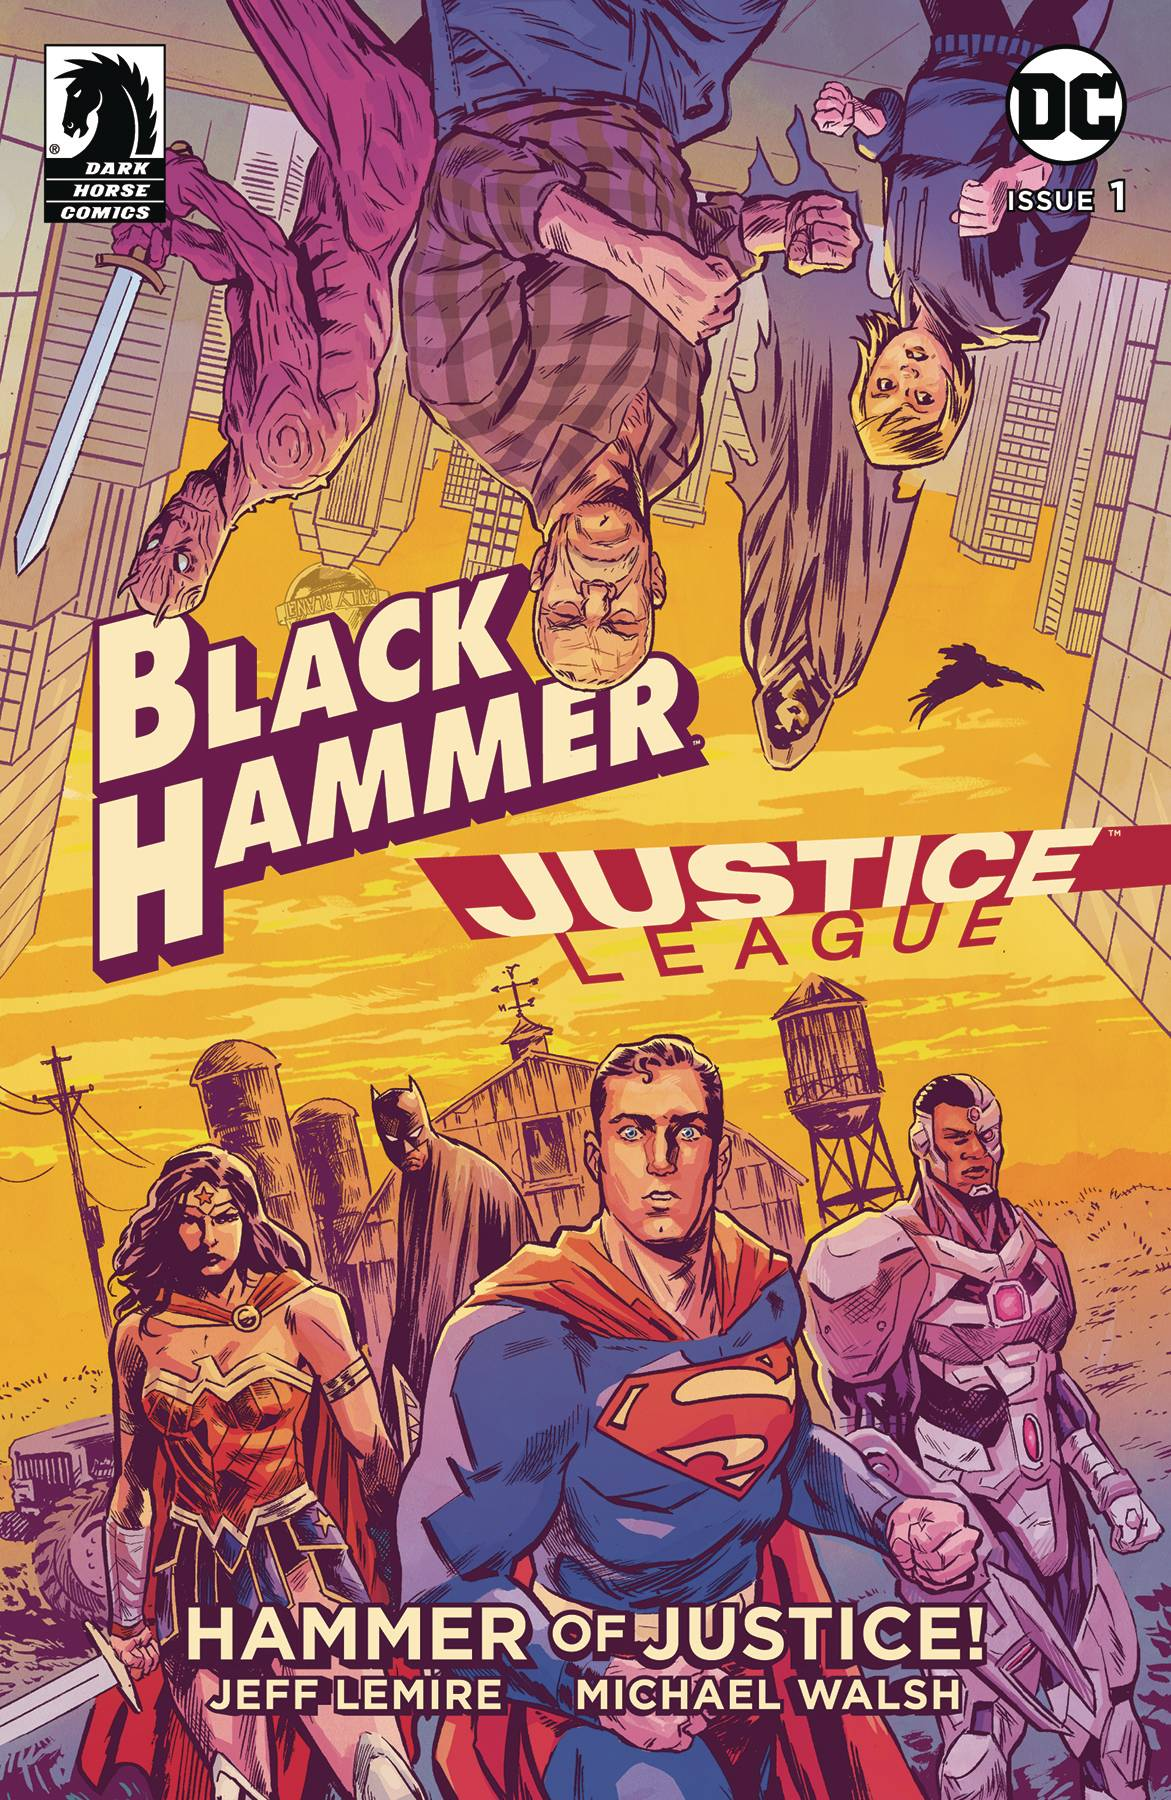 BLACK HAMMER JUSTICE LEAGUE 1 of 5 CVR A WALSH.jpg